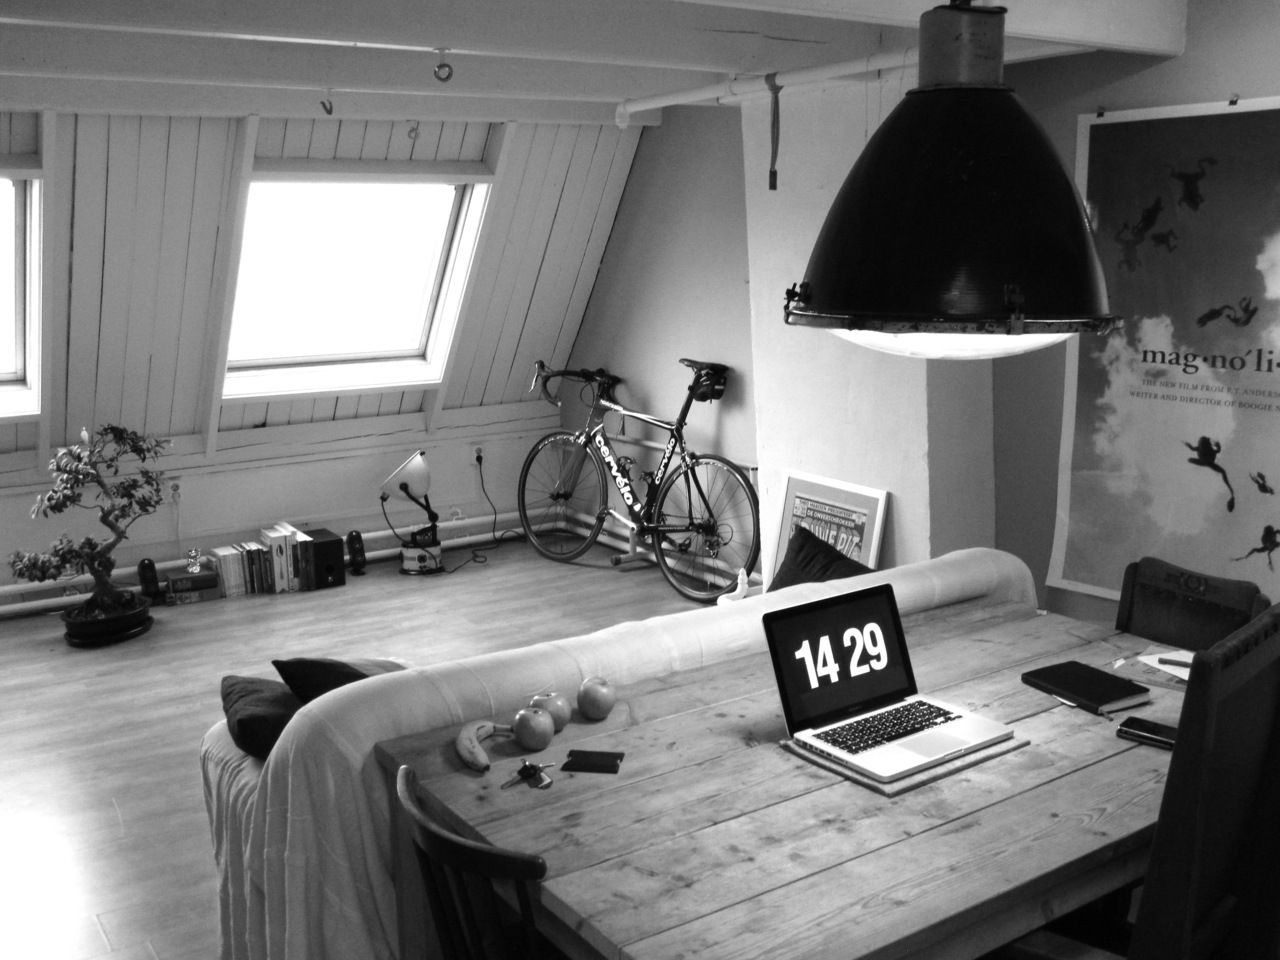 A bike always makes any room better!